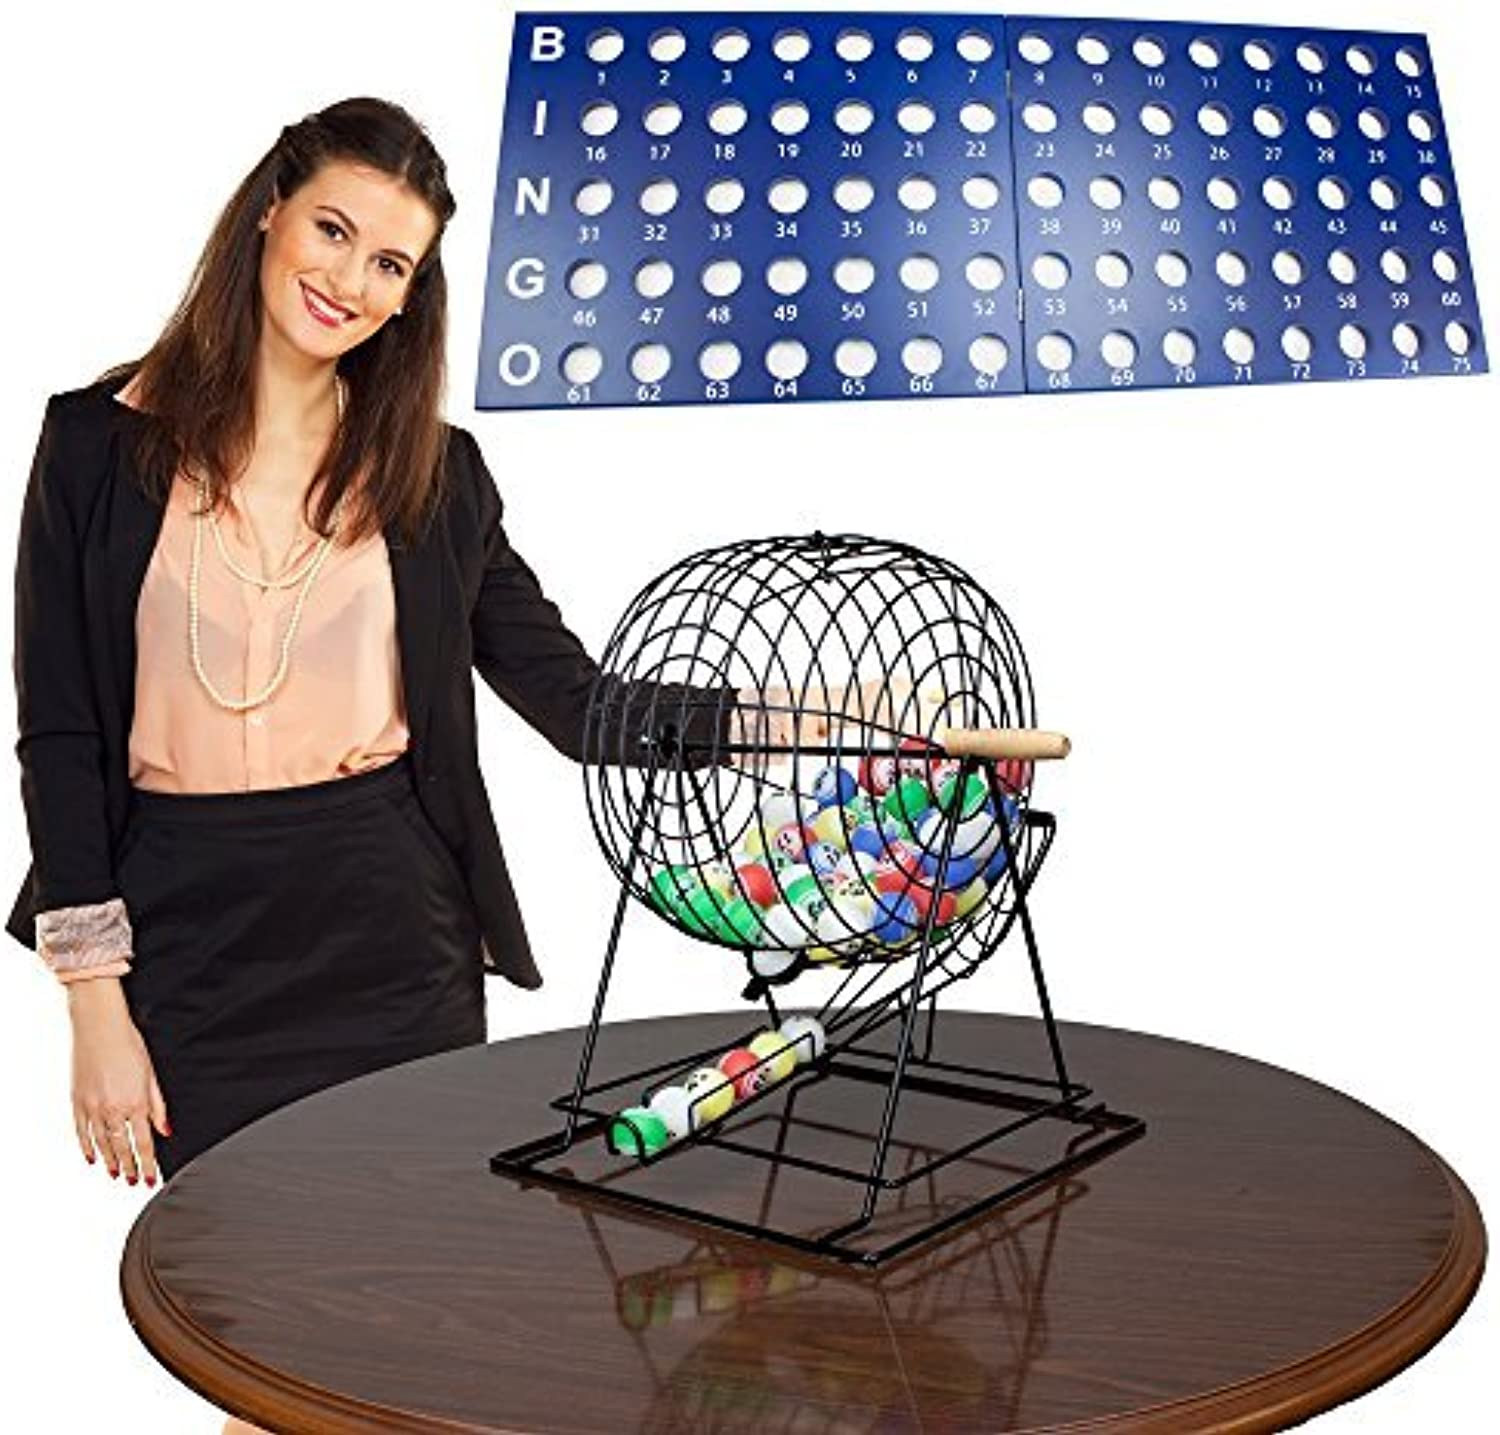 Royal Bingo Supplies Professional Bingo Set by Royal Bingo Supplies